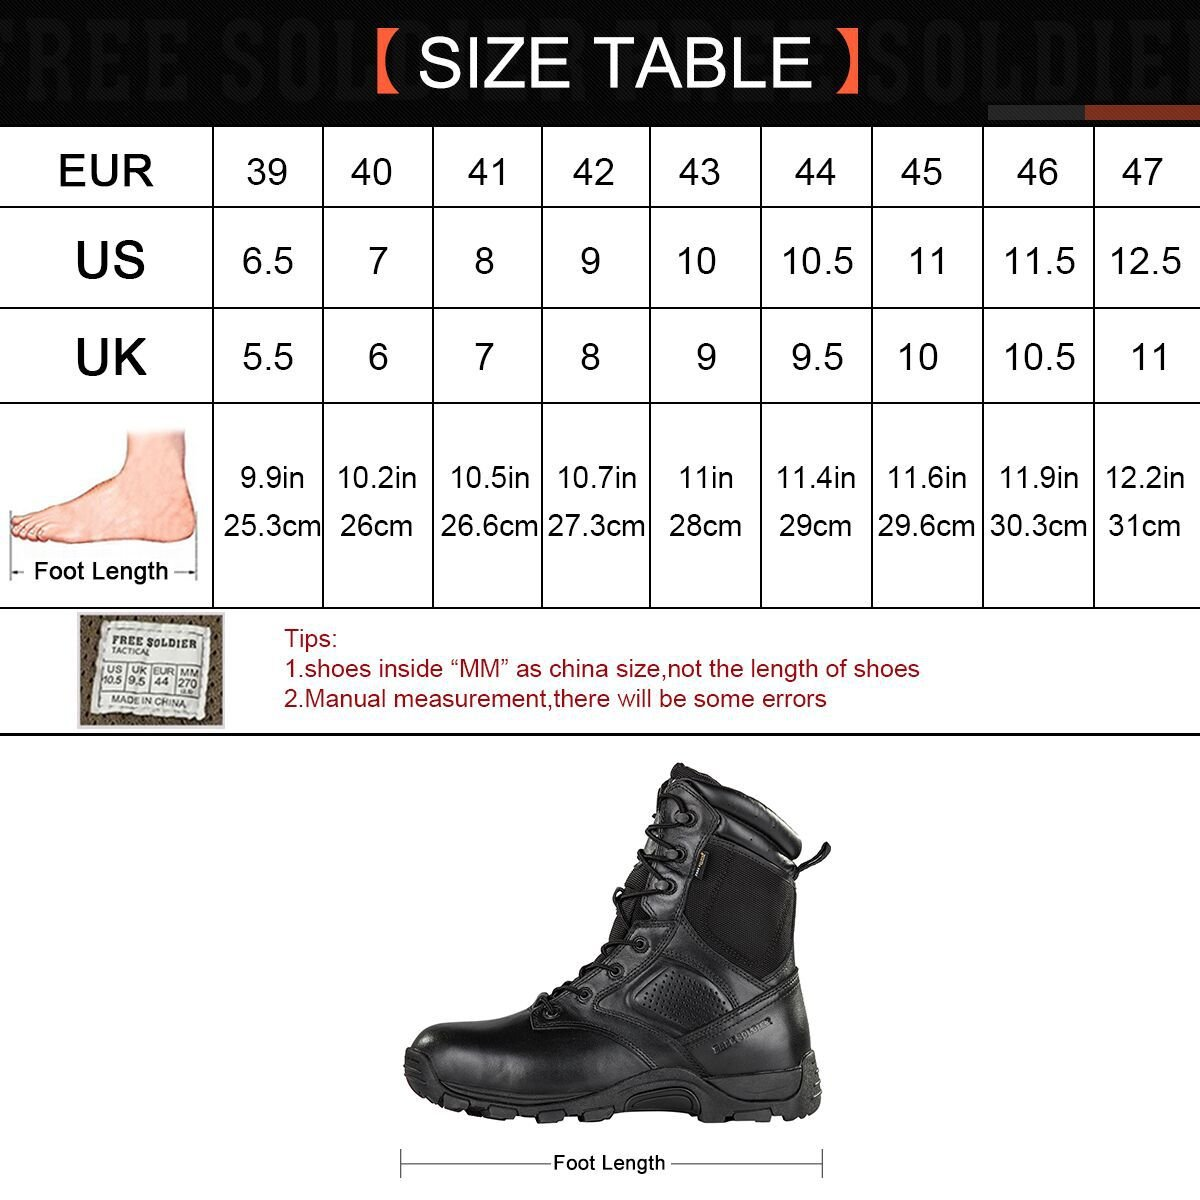 Steel Toe Tactical Boots - FREE SODLIER Waterproof Shoes Penetration Resistant Composite Toe Combat Boot(Black 12.5) by FREE SOLDIER (Image #7)